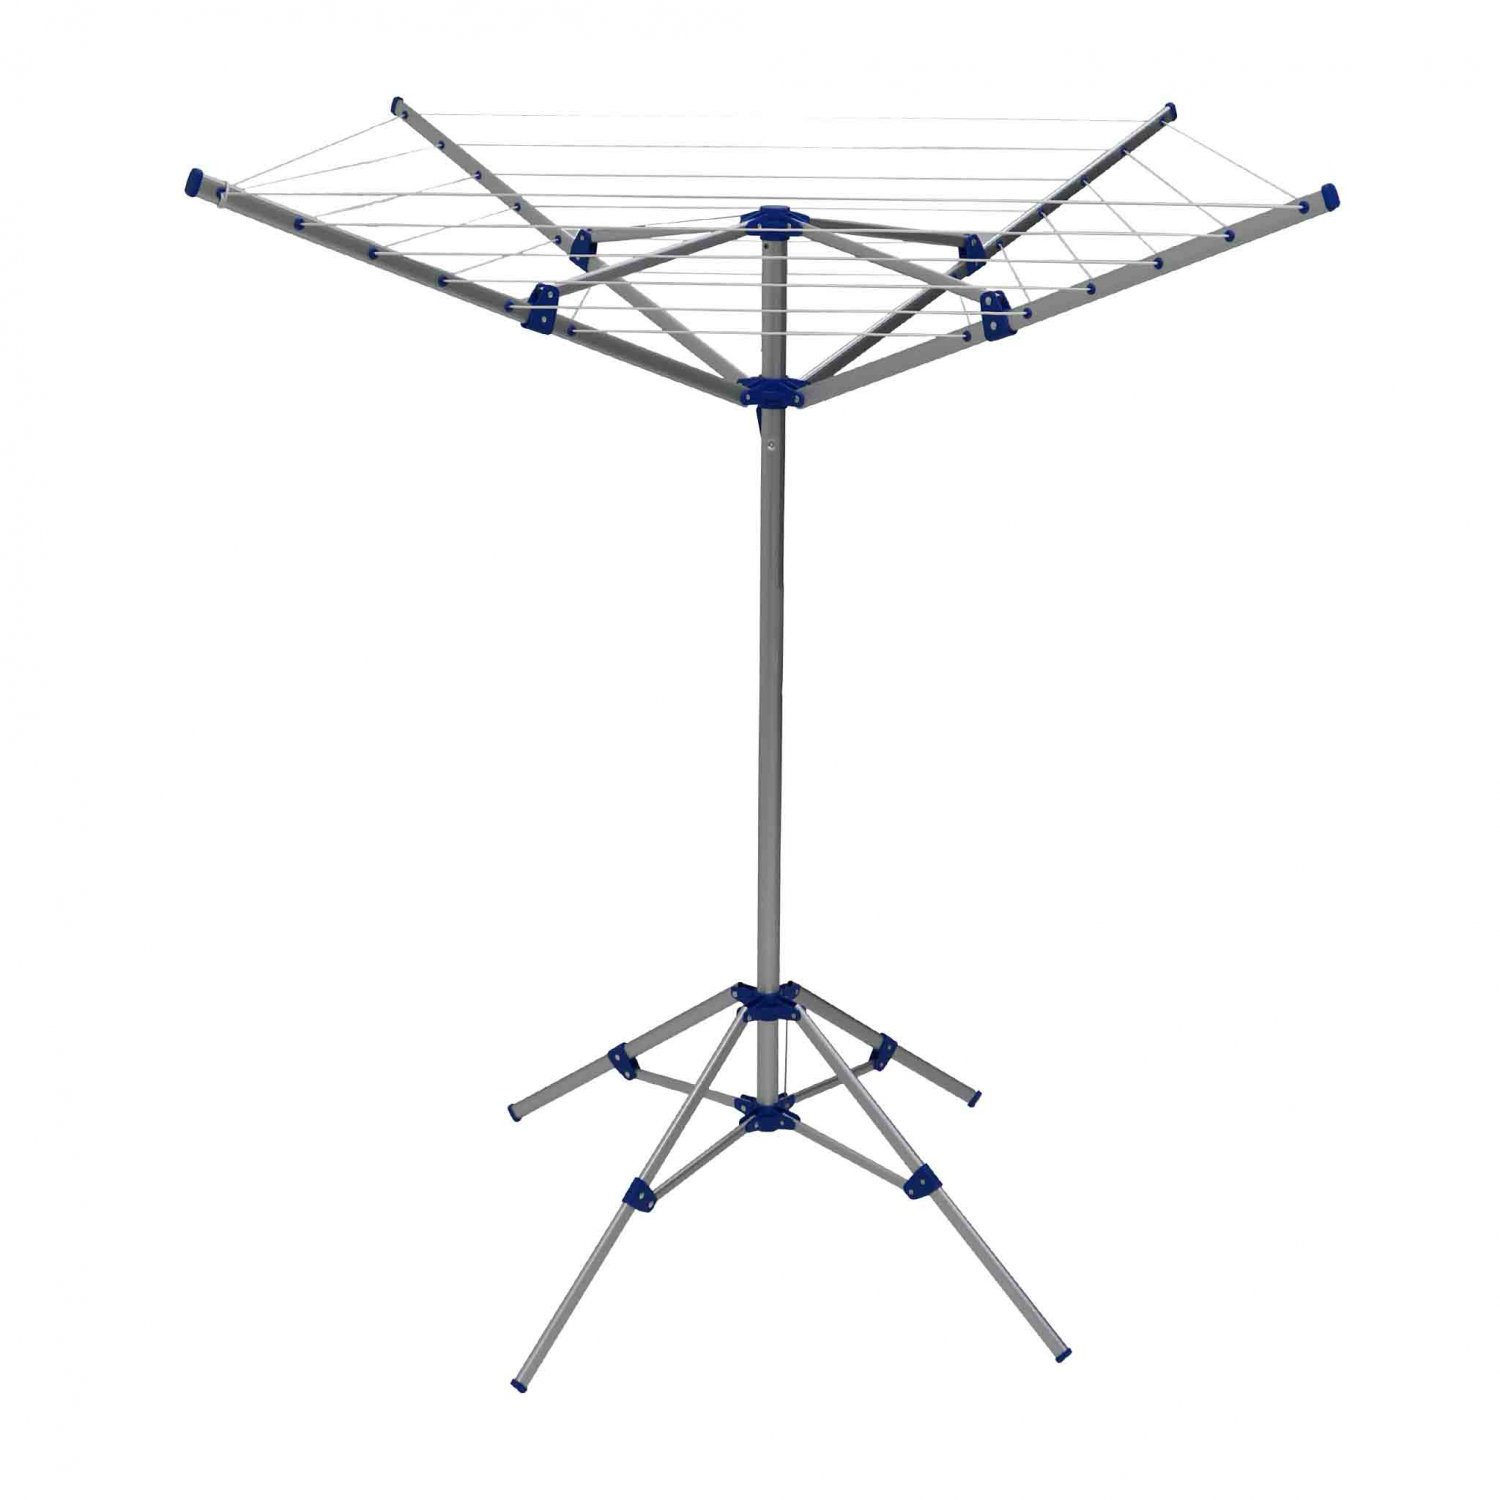 15m 4 Arm Lightweight Aluminium Rotary Airer Portable Washing